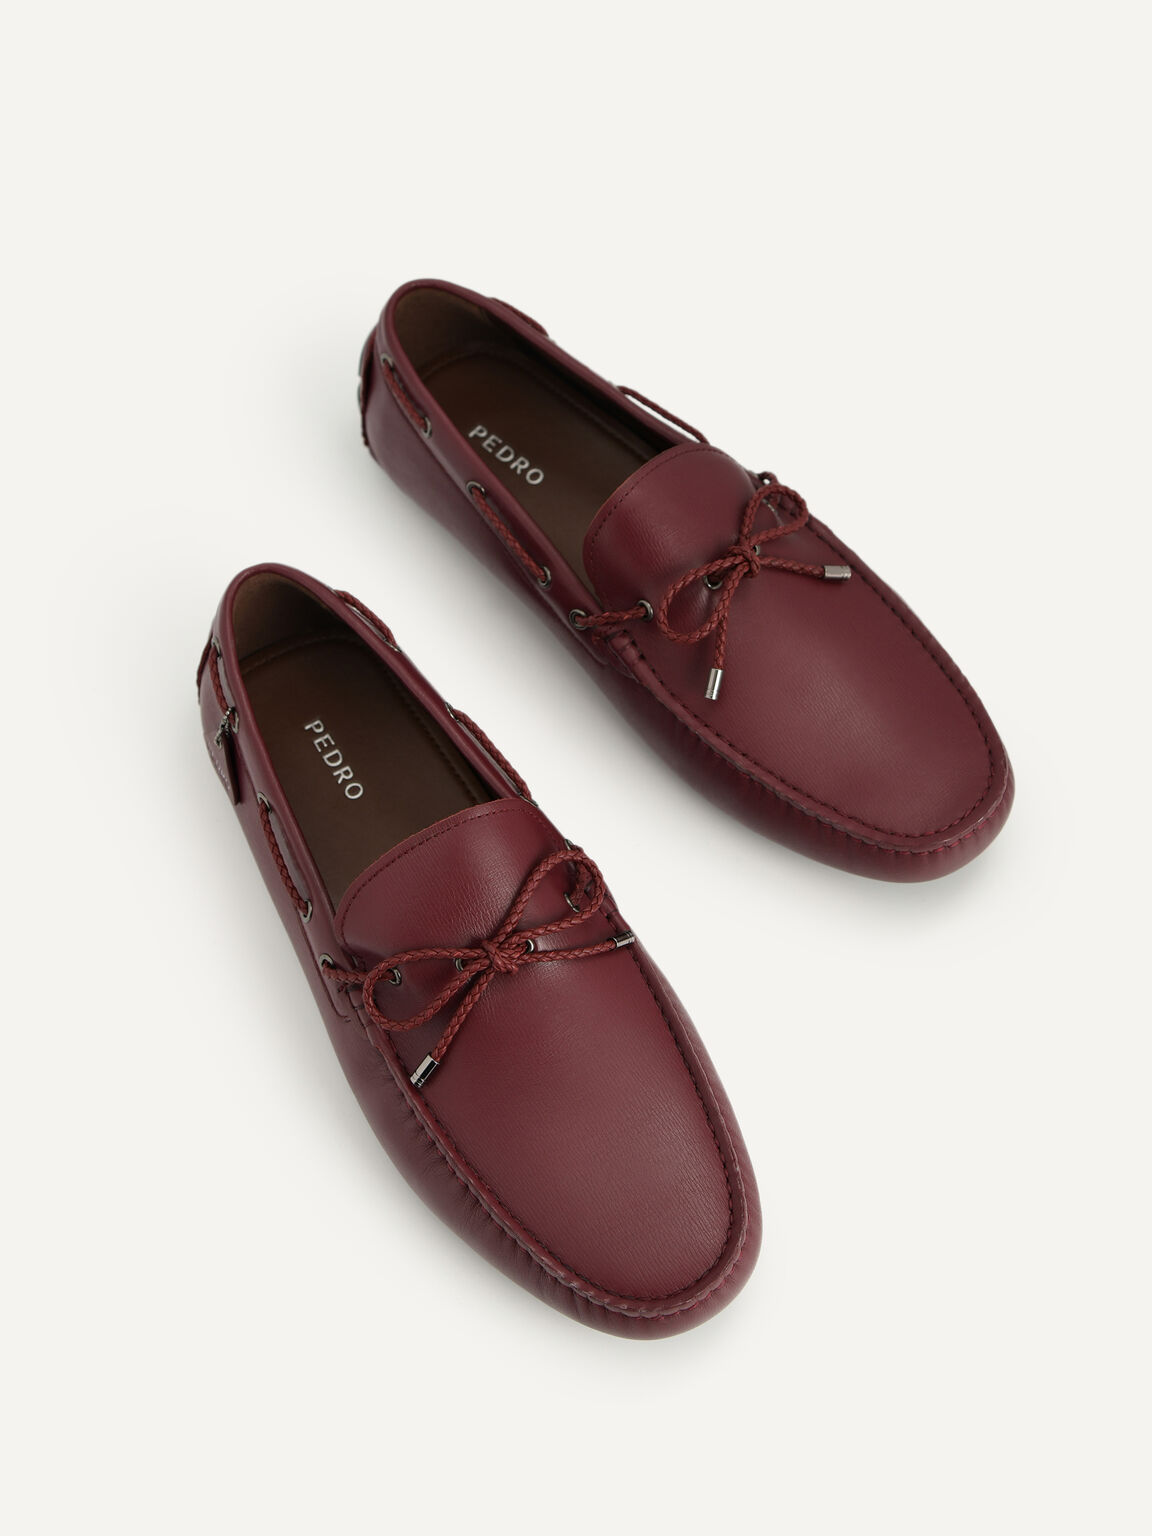 Textured Leather Moccasins, Maroon, hi-res